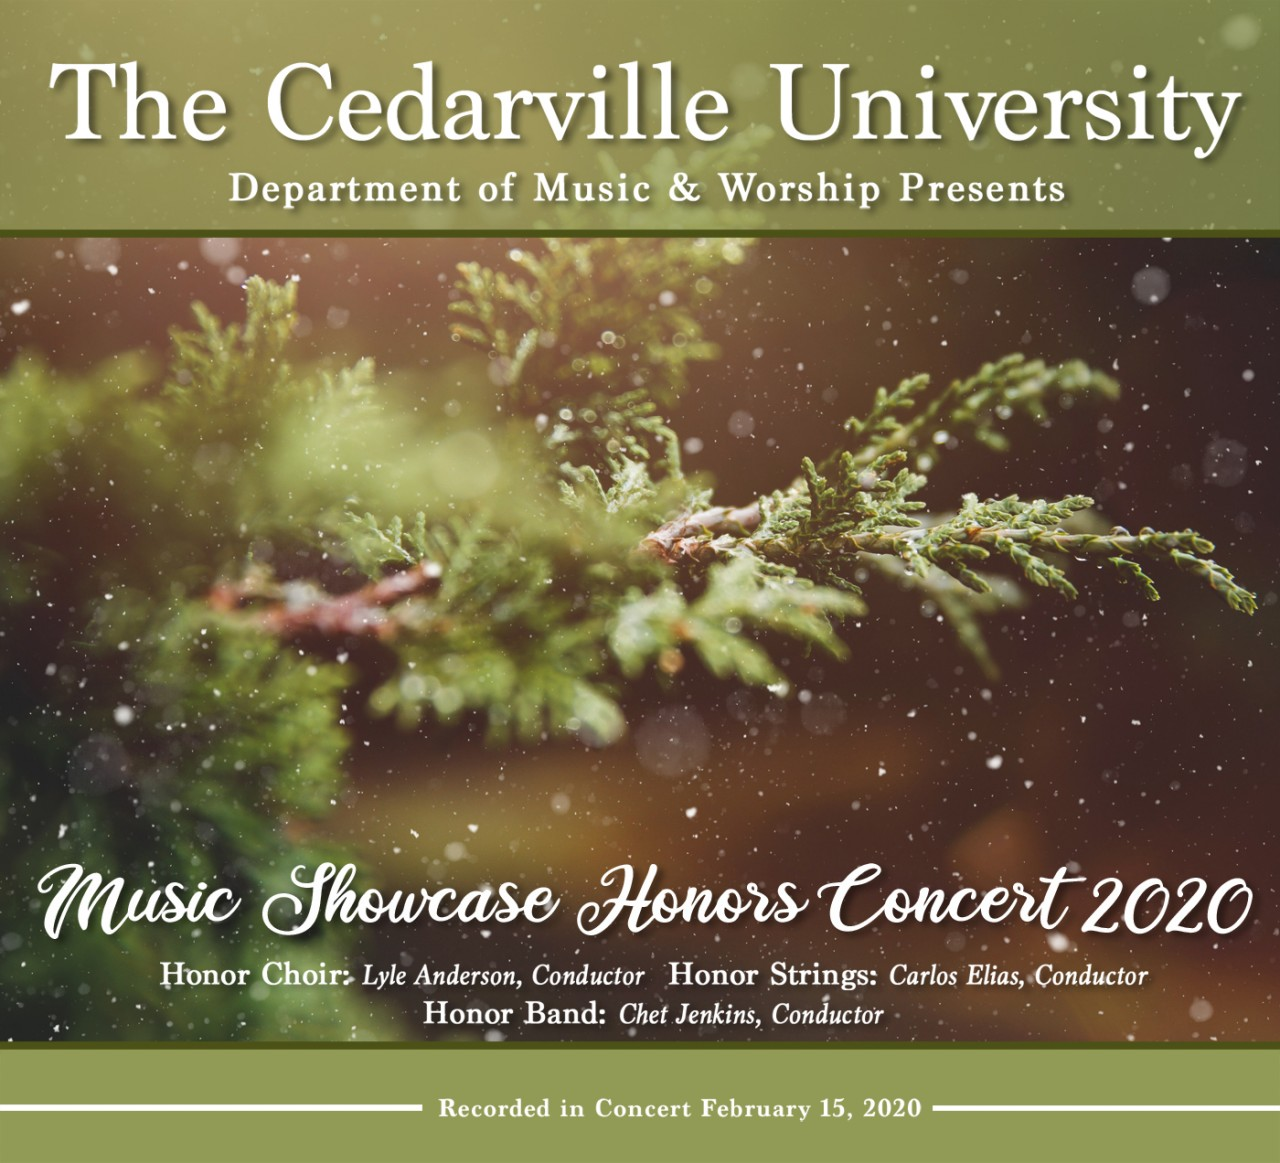 Cedarville University Showcase Honor Band, Choir, and Orchestra 2